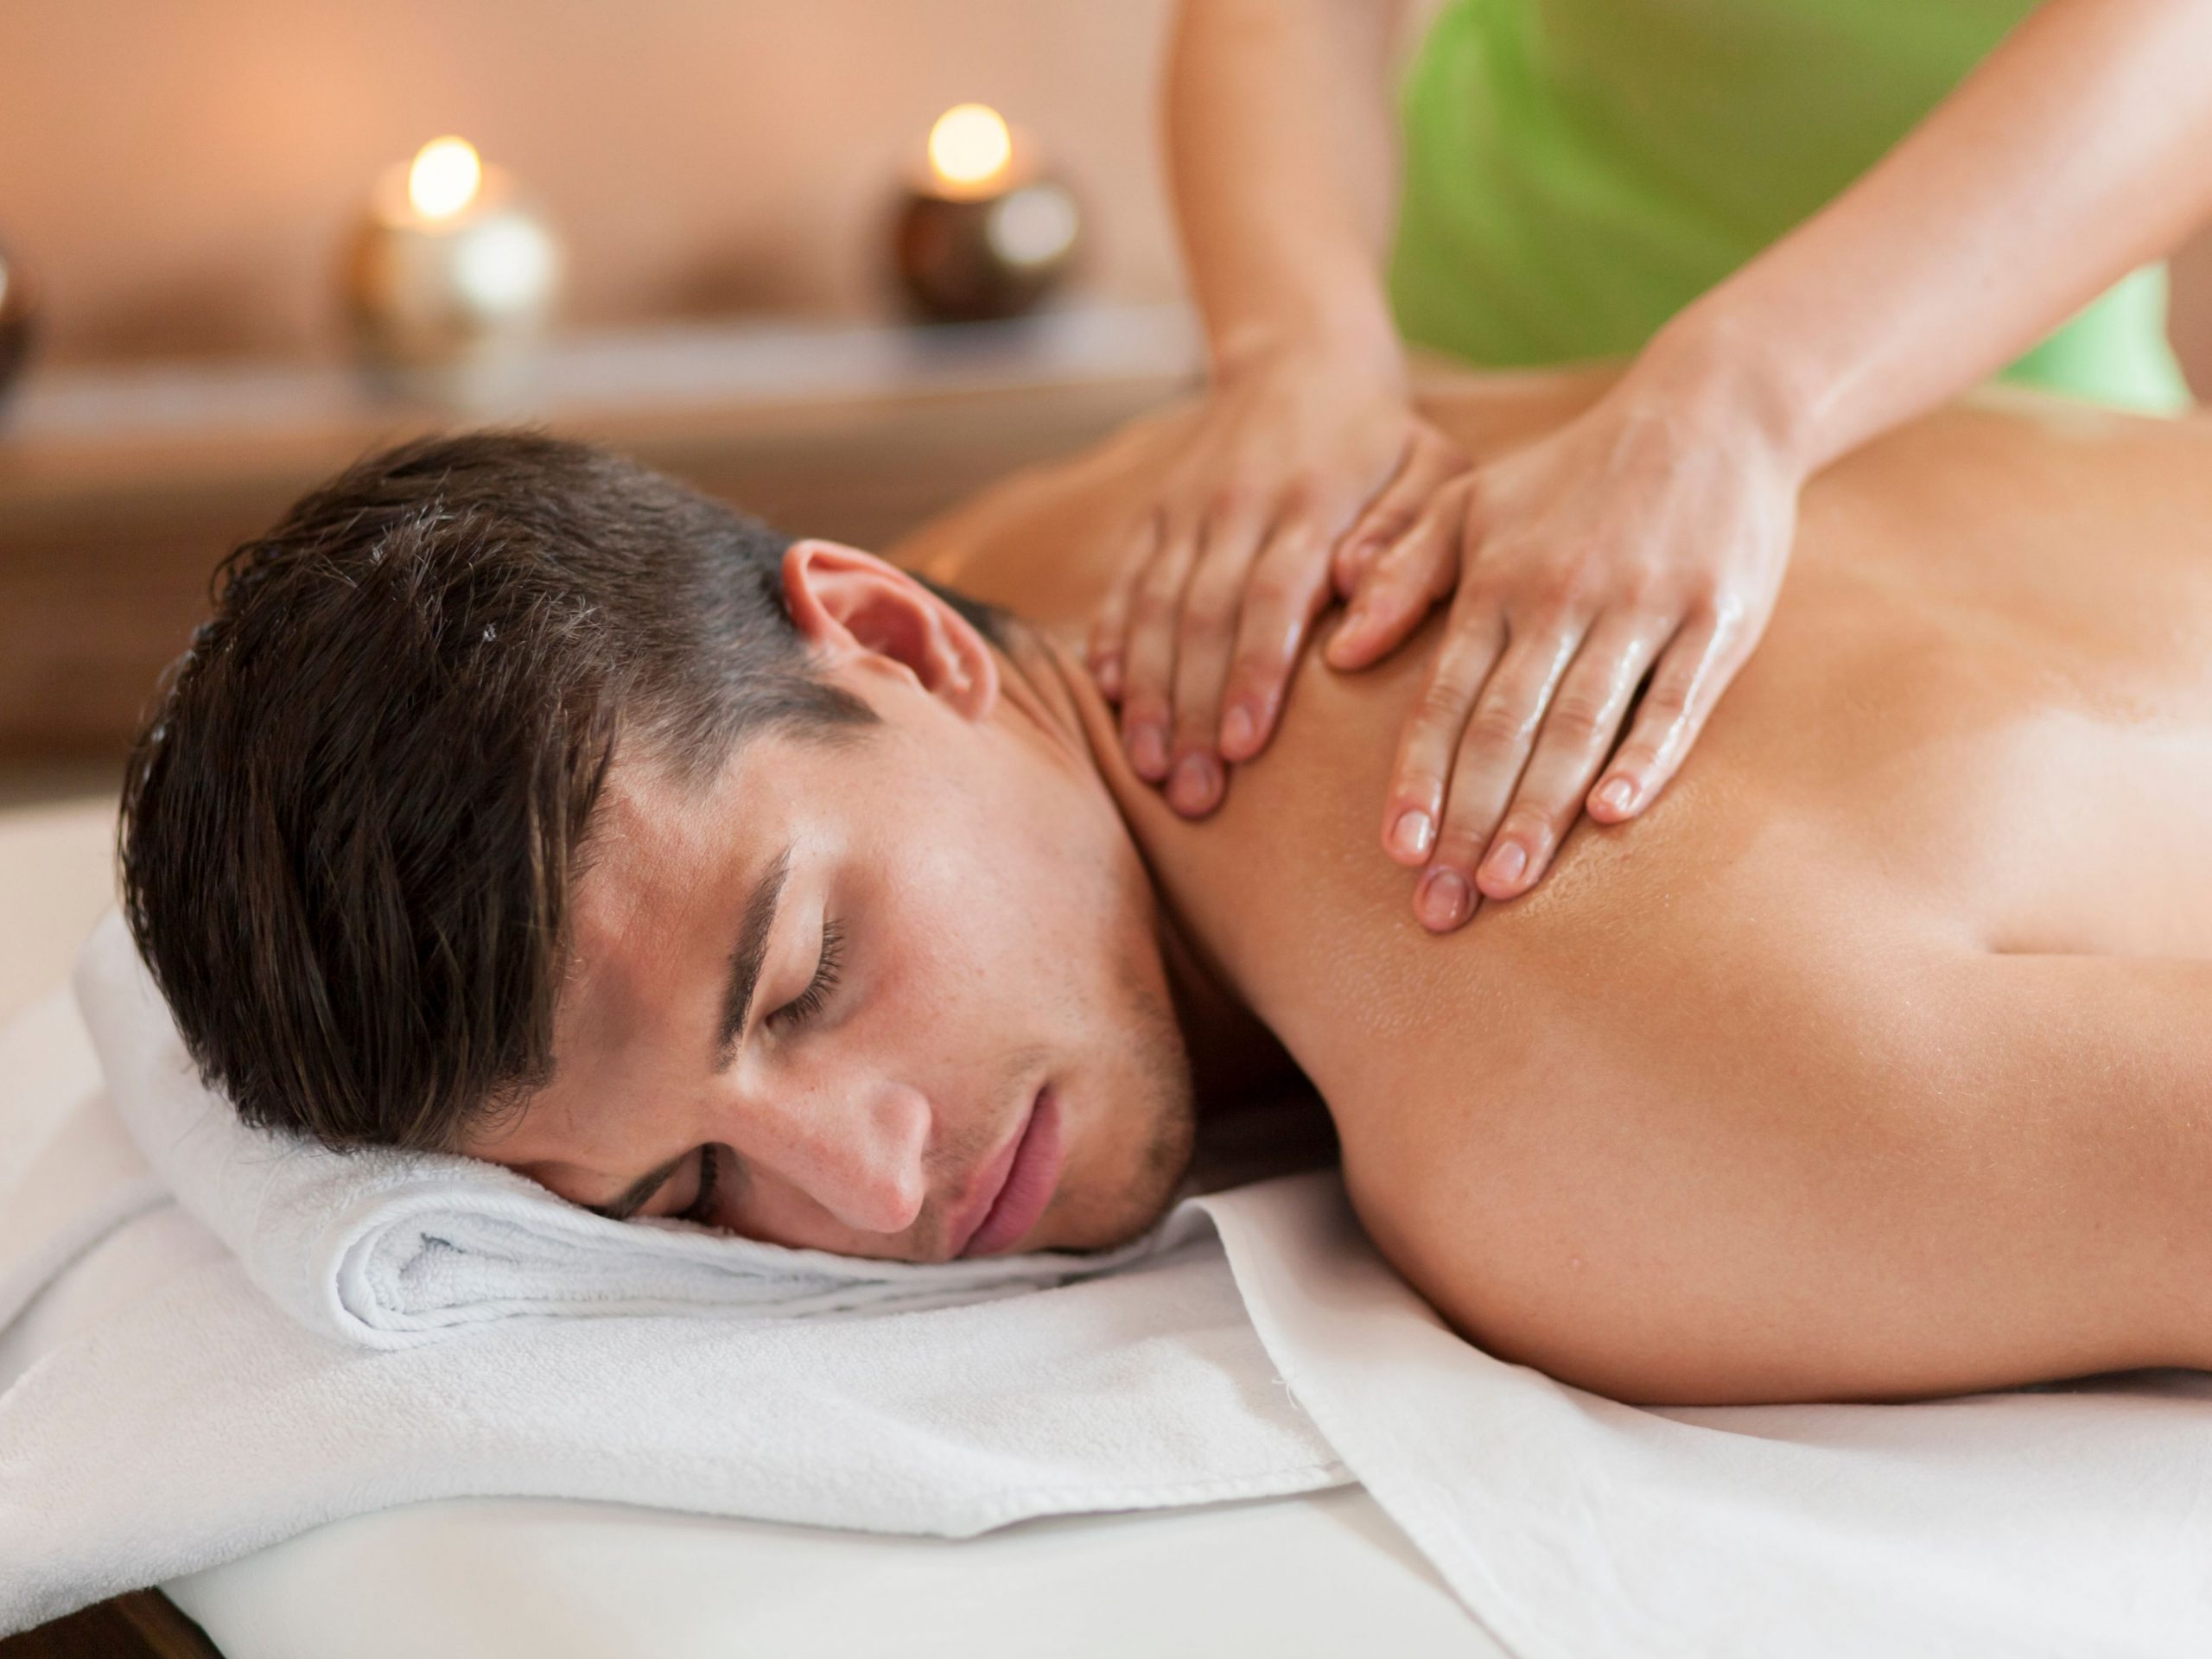 What are the contraindications to massage?